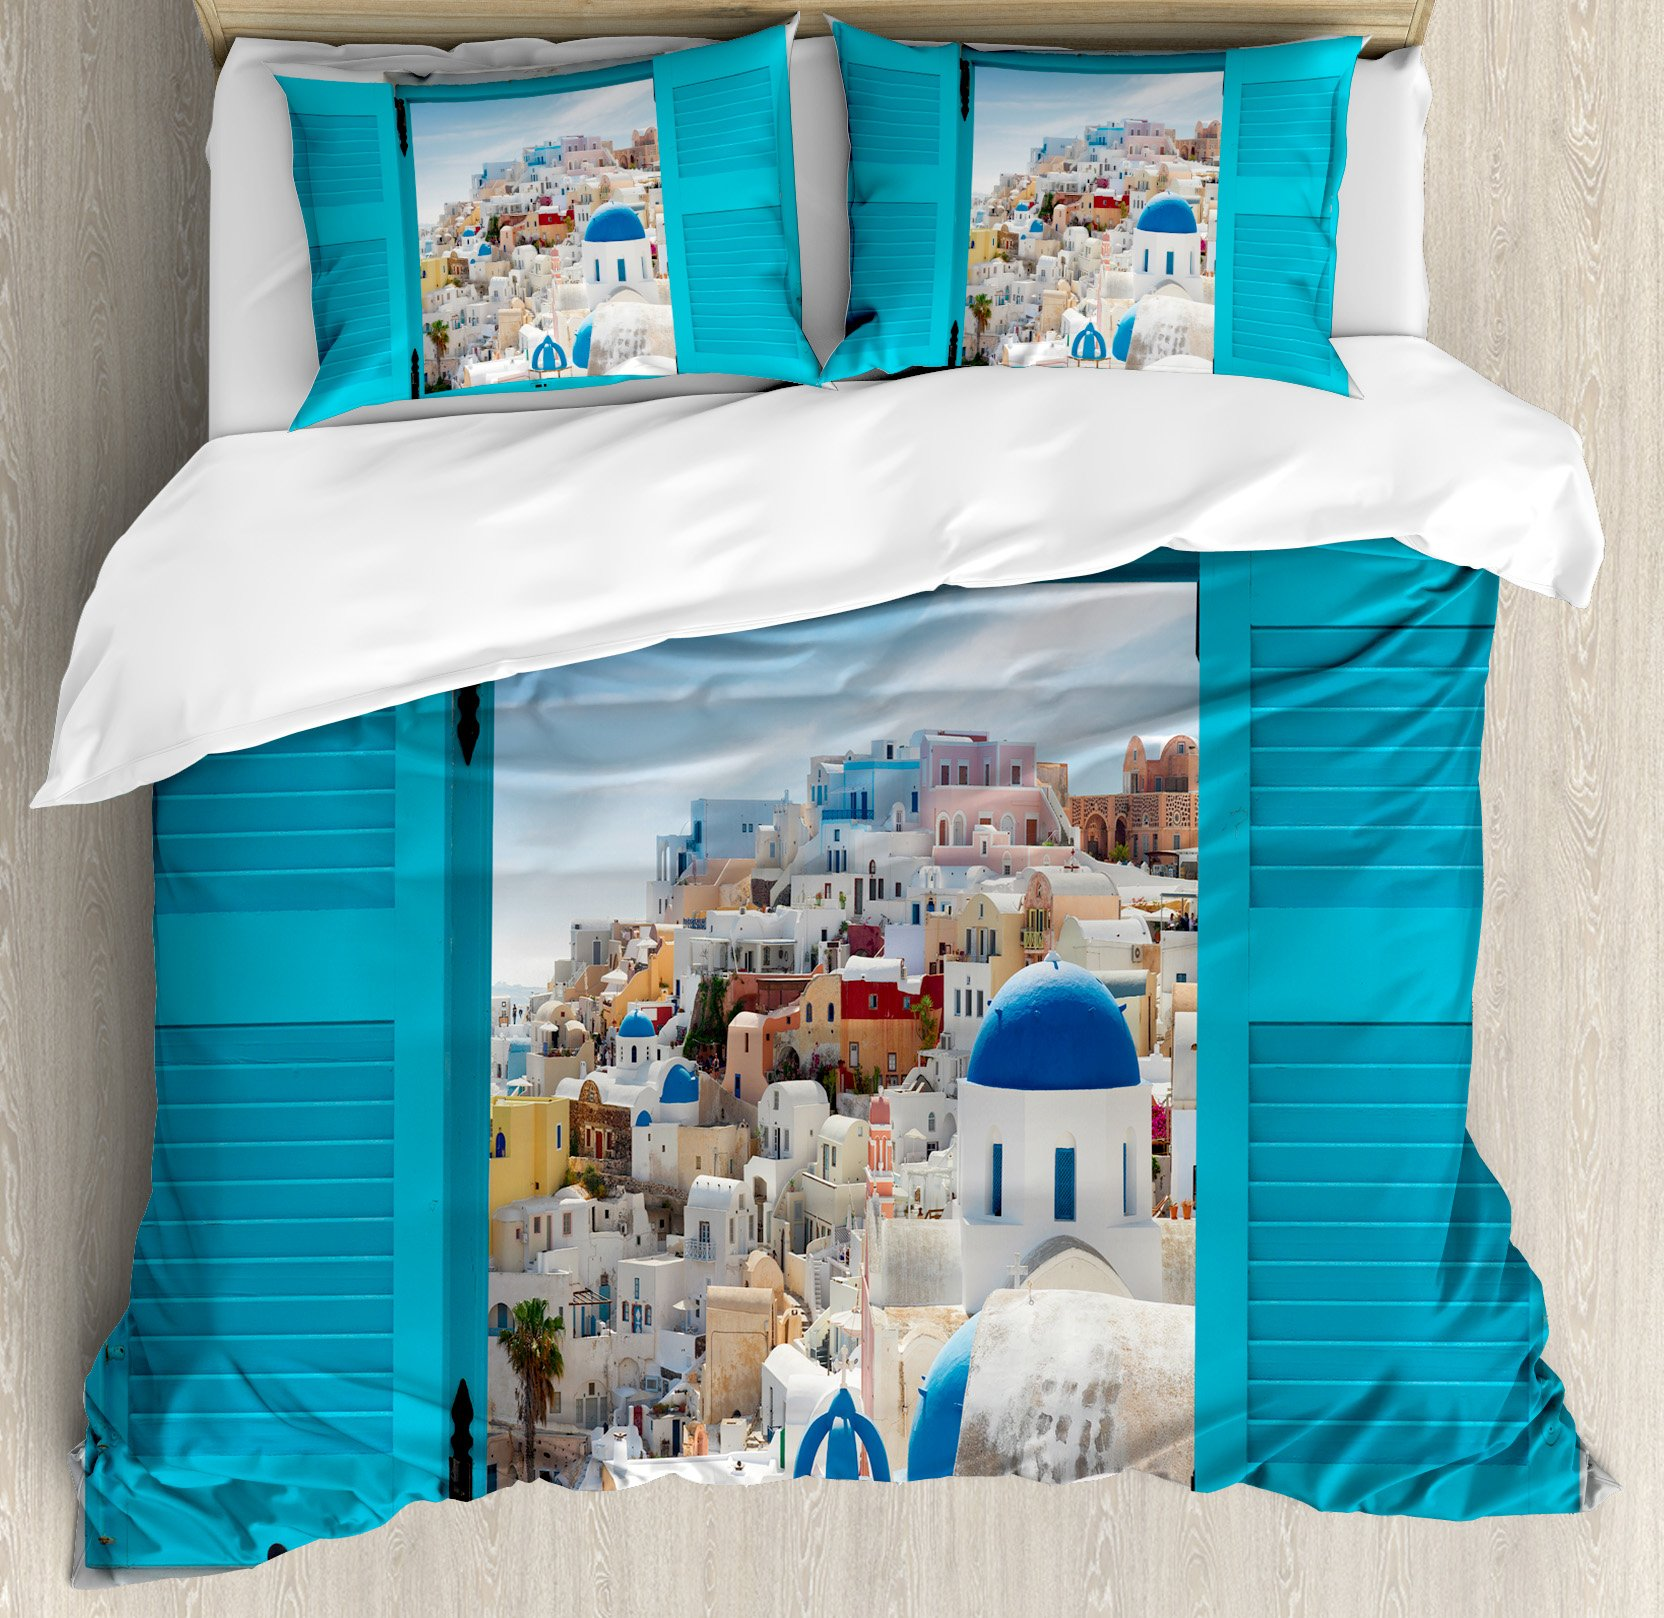 Cityscape Duvet Cover Set King Size by Ambesonne, Old Shutter Window with View of Traditional Greek Village Heritage Culture Deco, Decorative 3 Piece Bedding Set with 2 Pillow Shams, Multi